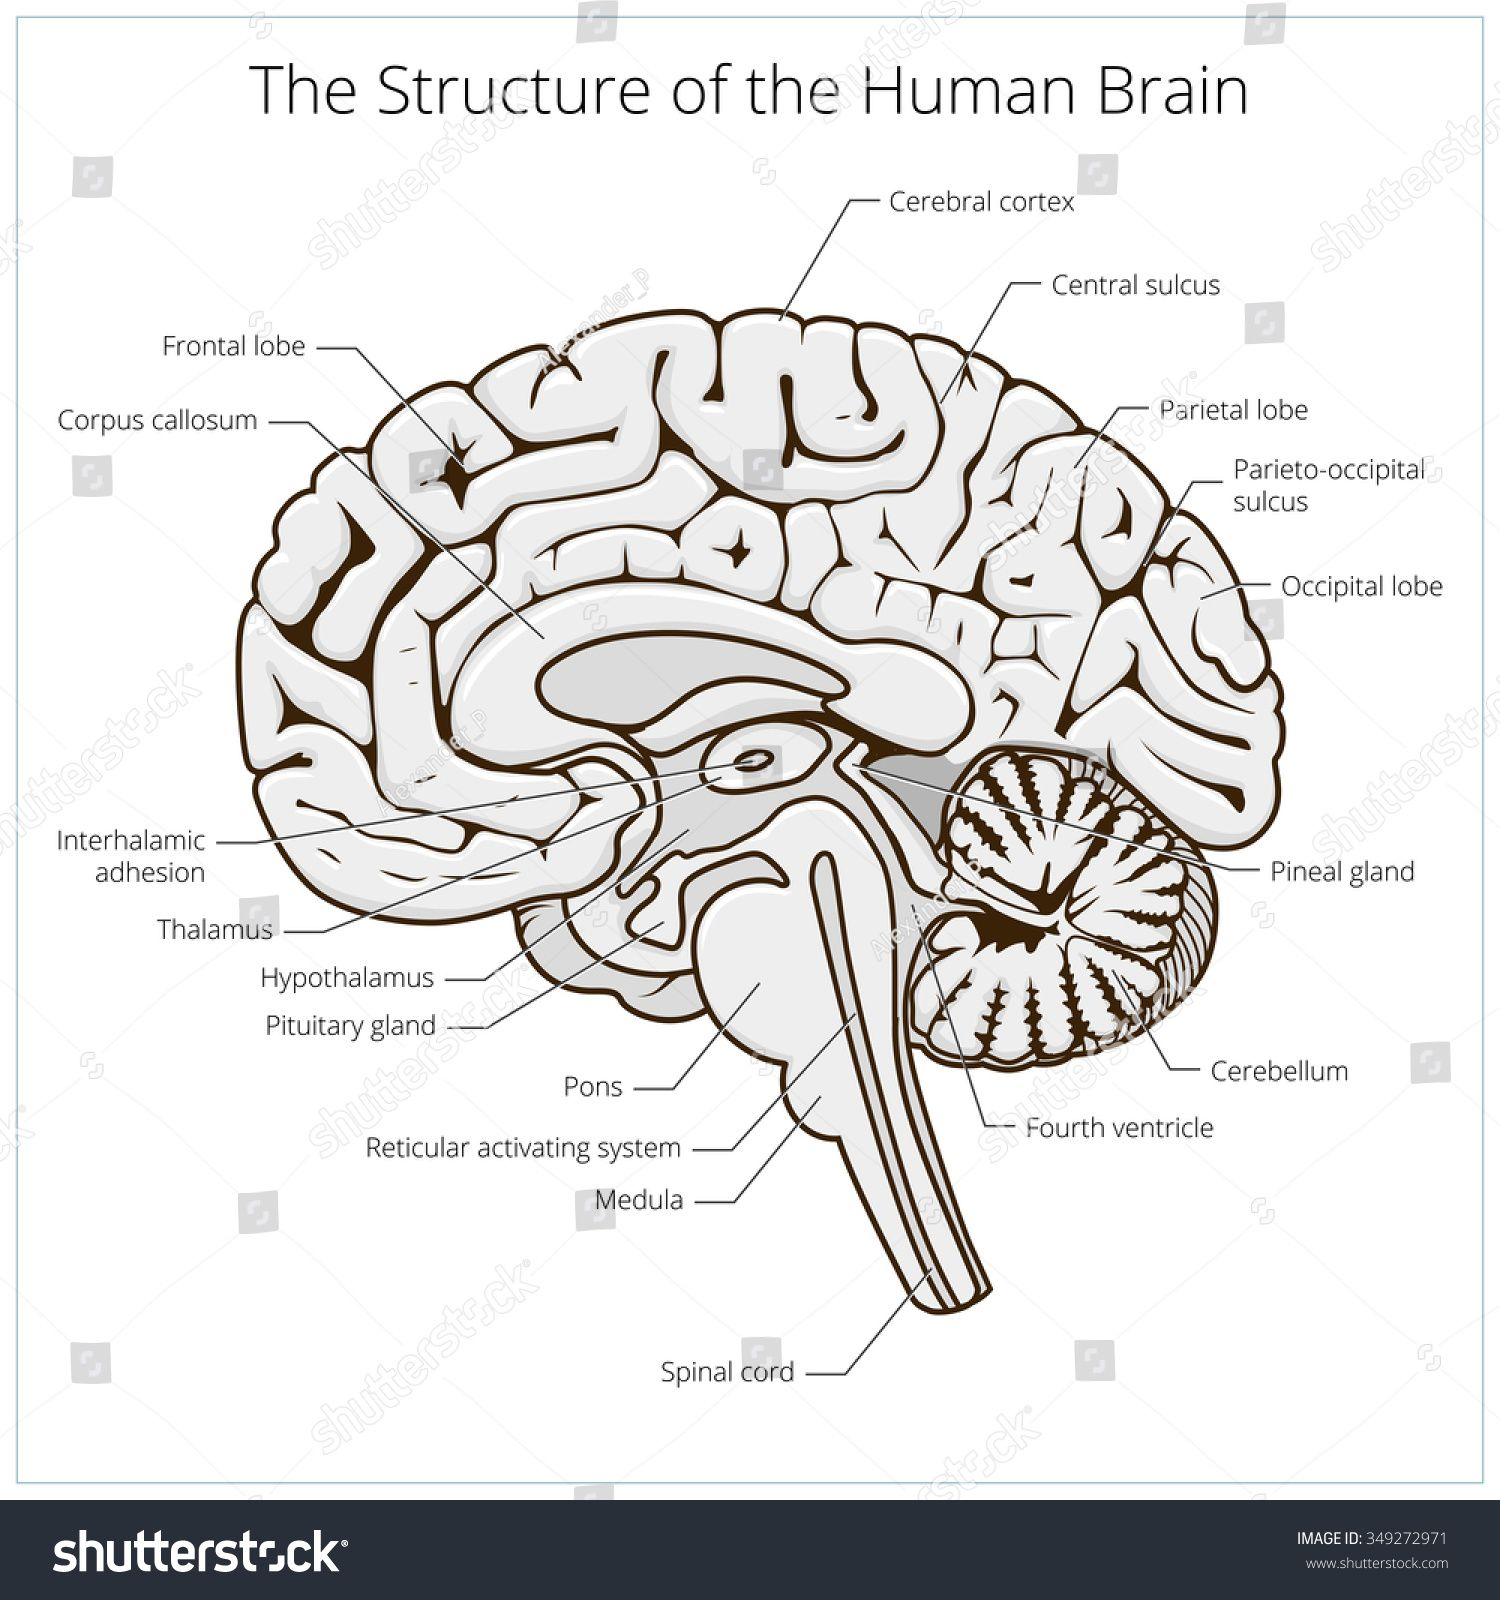 Structure Of Human Brain Section Schematic Vector Illustration Medical Science Educational Illustration Structure Of Human Brain Brain Images Human Brain [ 1600 x 1500 Pixel ]